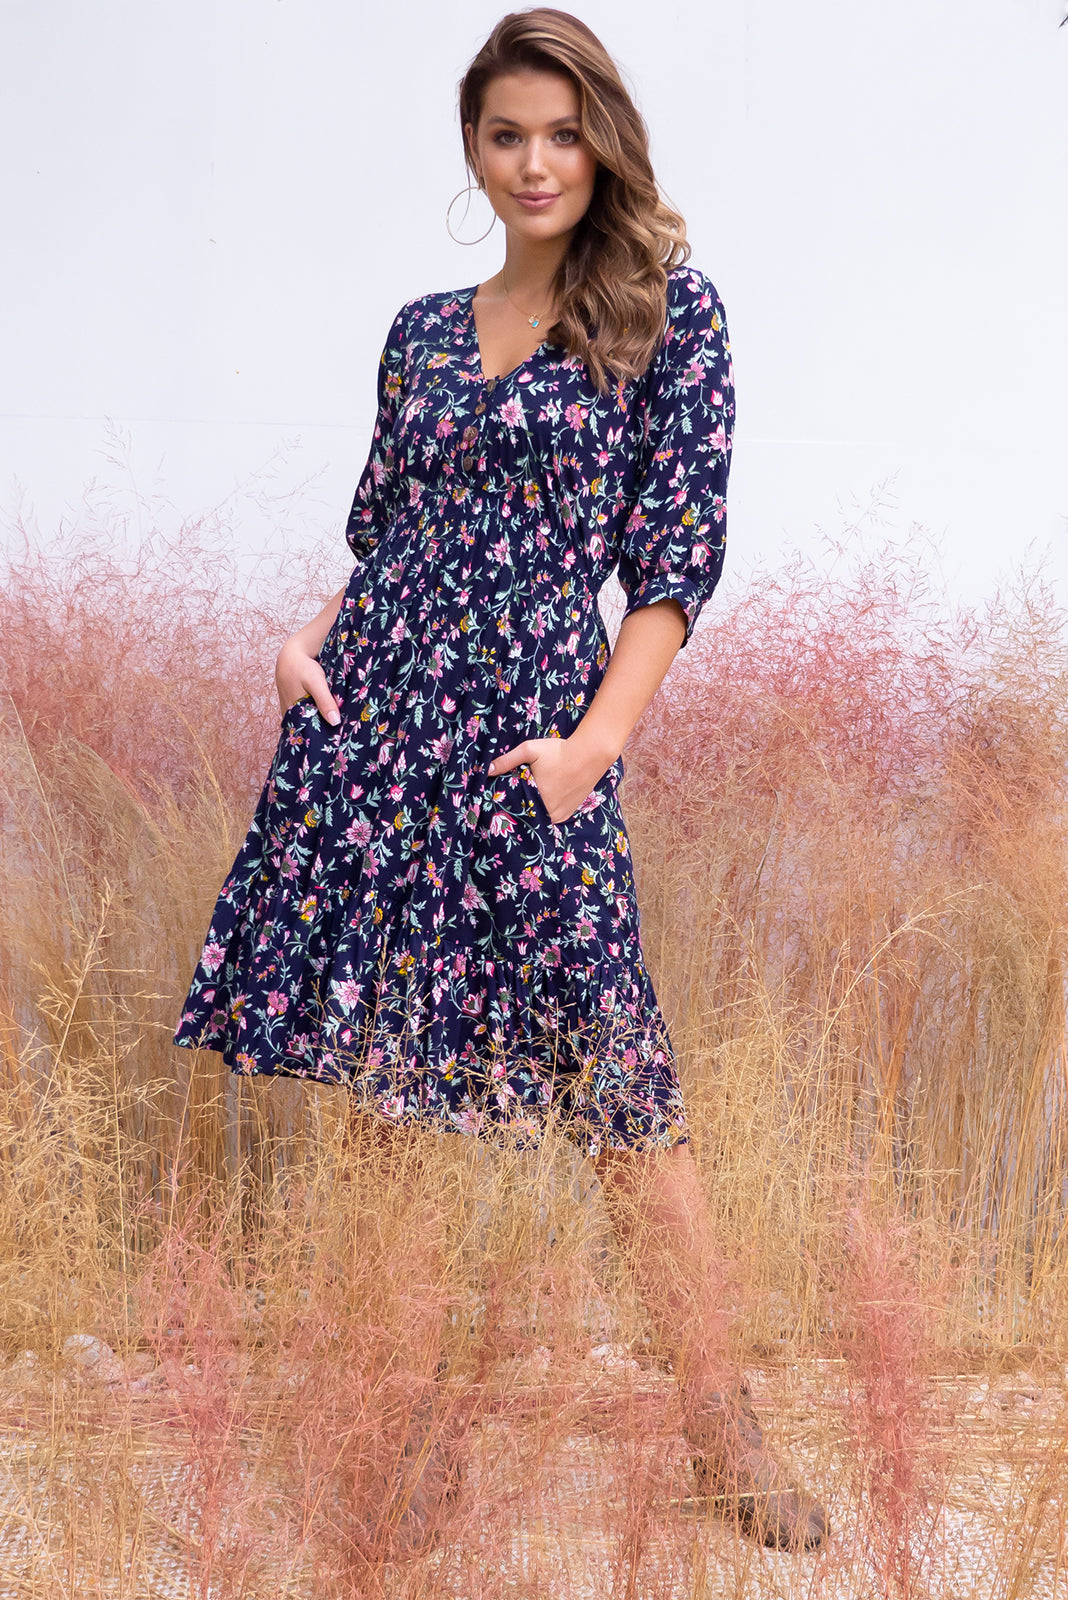 Sally Sugar Midnight dress features elasticated empire line with a cap sleeve, deep v neck and functional button front the fabric is a soft woven rayon in a dark inky navy enchanted bohemian floral print